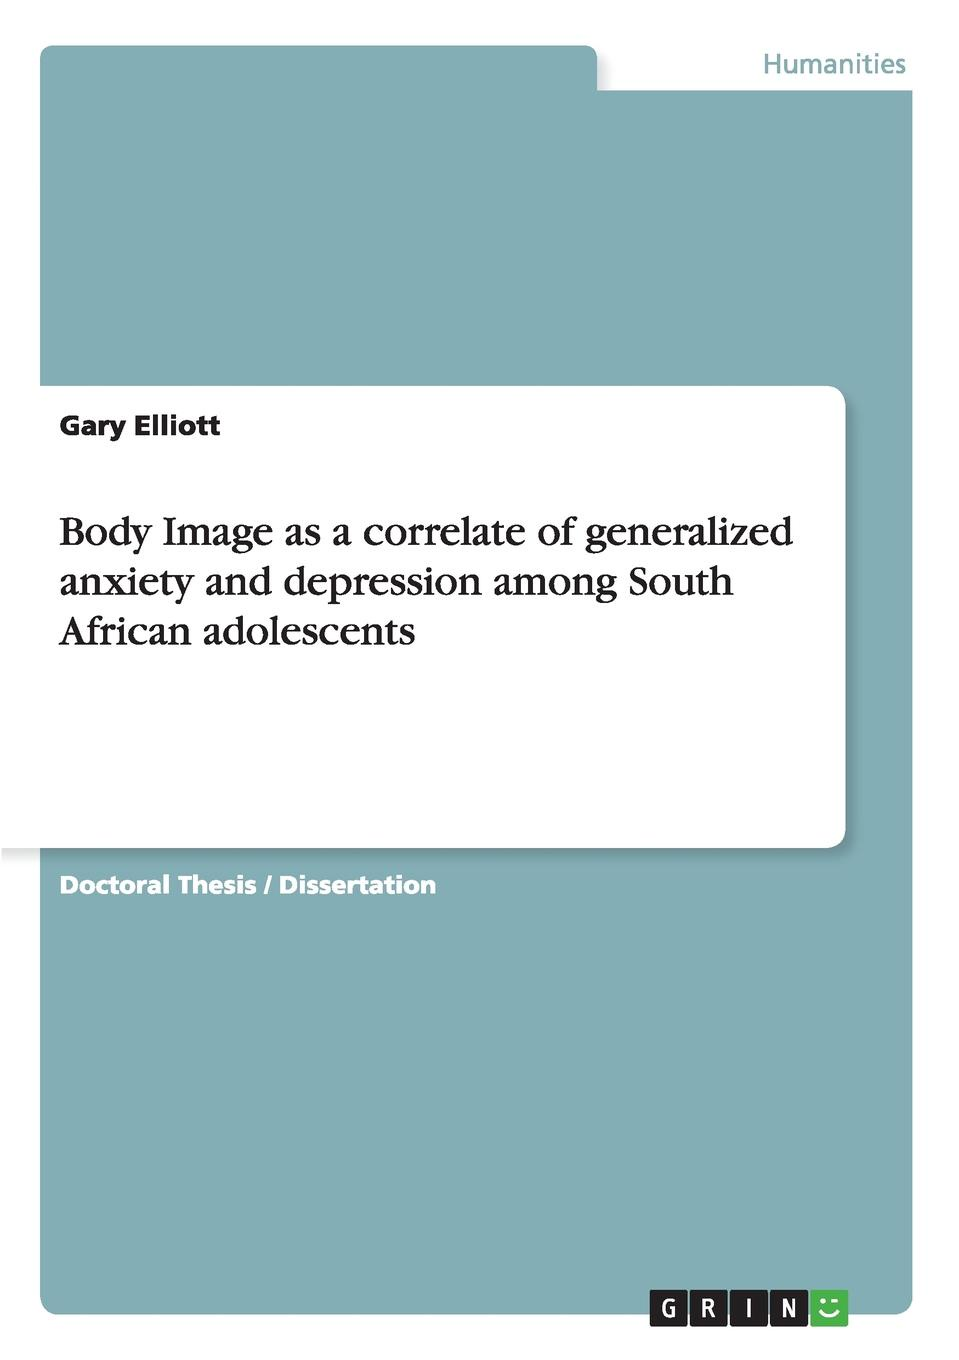 Gary Elliott Body Image as a correlate of generalized anxiety and depression among South African adolescents exclusive patented waveform ces device treat anxiety depression